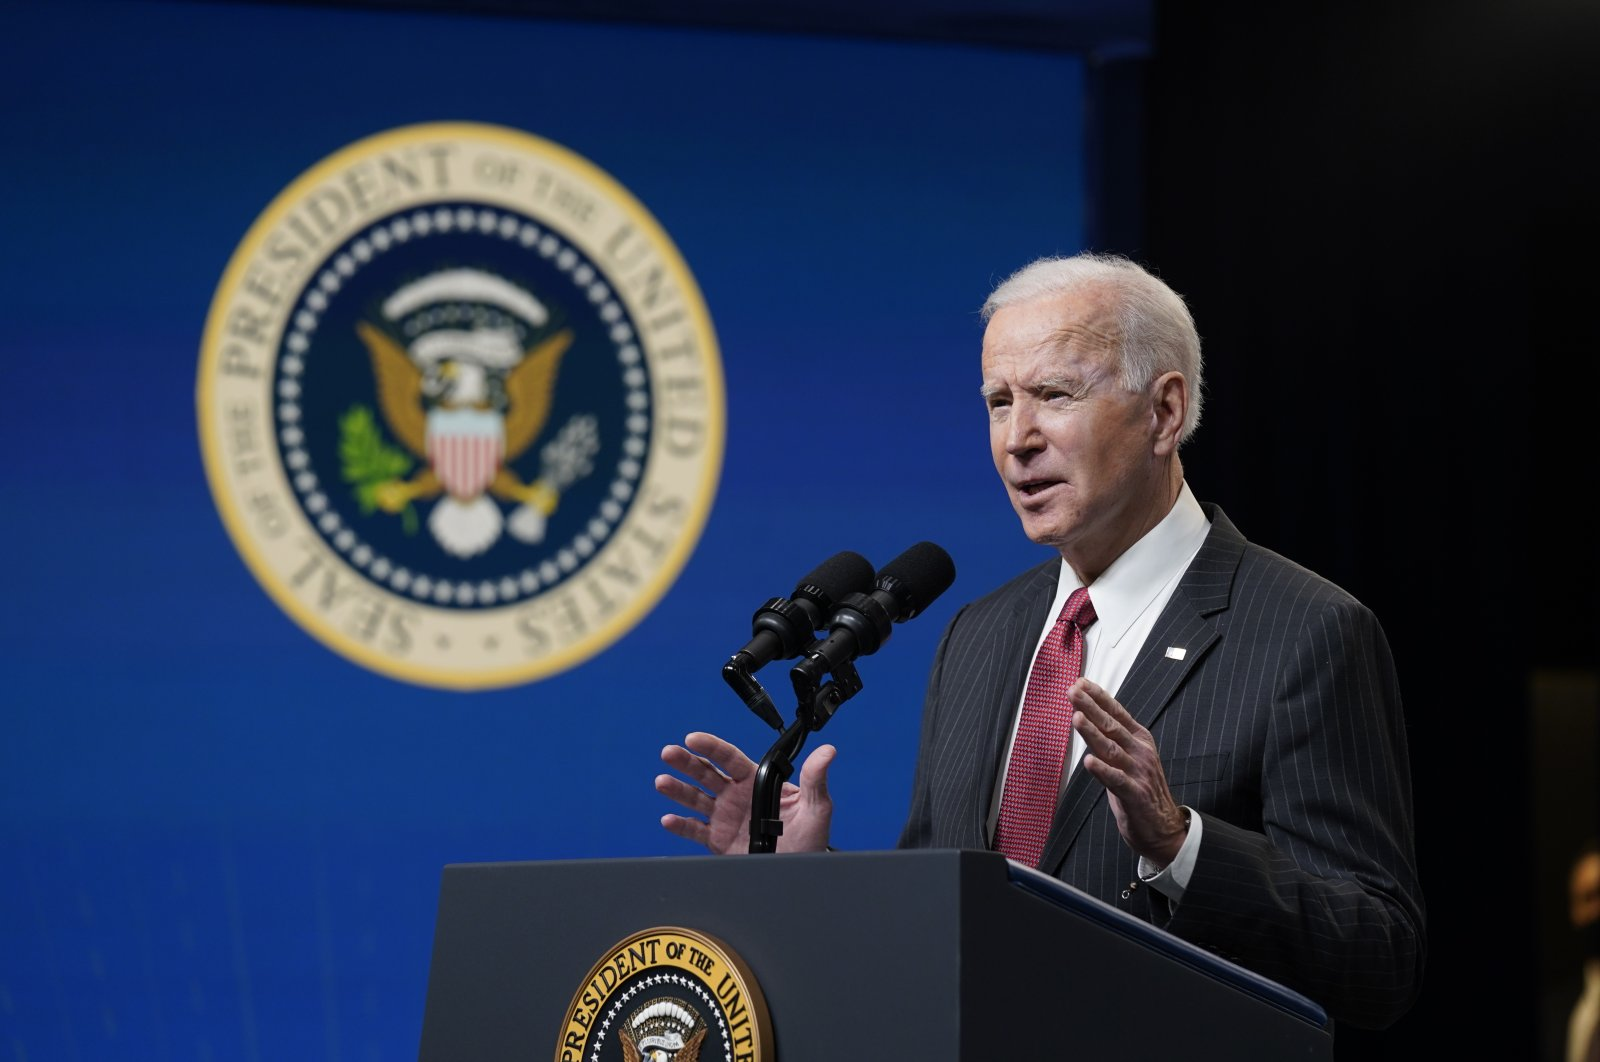 U.S. President Joe Biden speaks about his administration's response to the coup in Myanmar in the South Court Auditorium on the White House complex, Wednesday, Feb. 10, 2021, in Washington. (AP Photo)